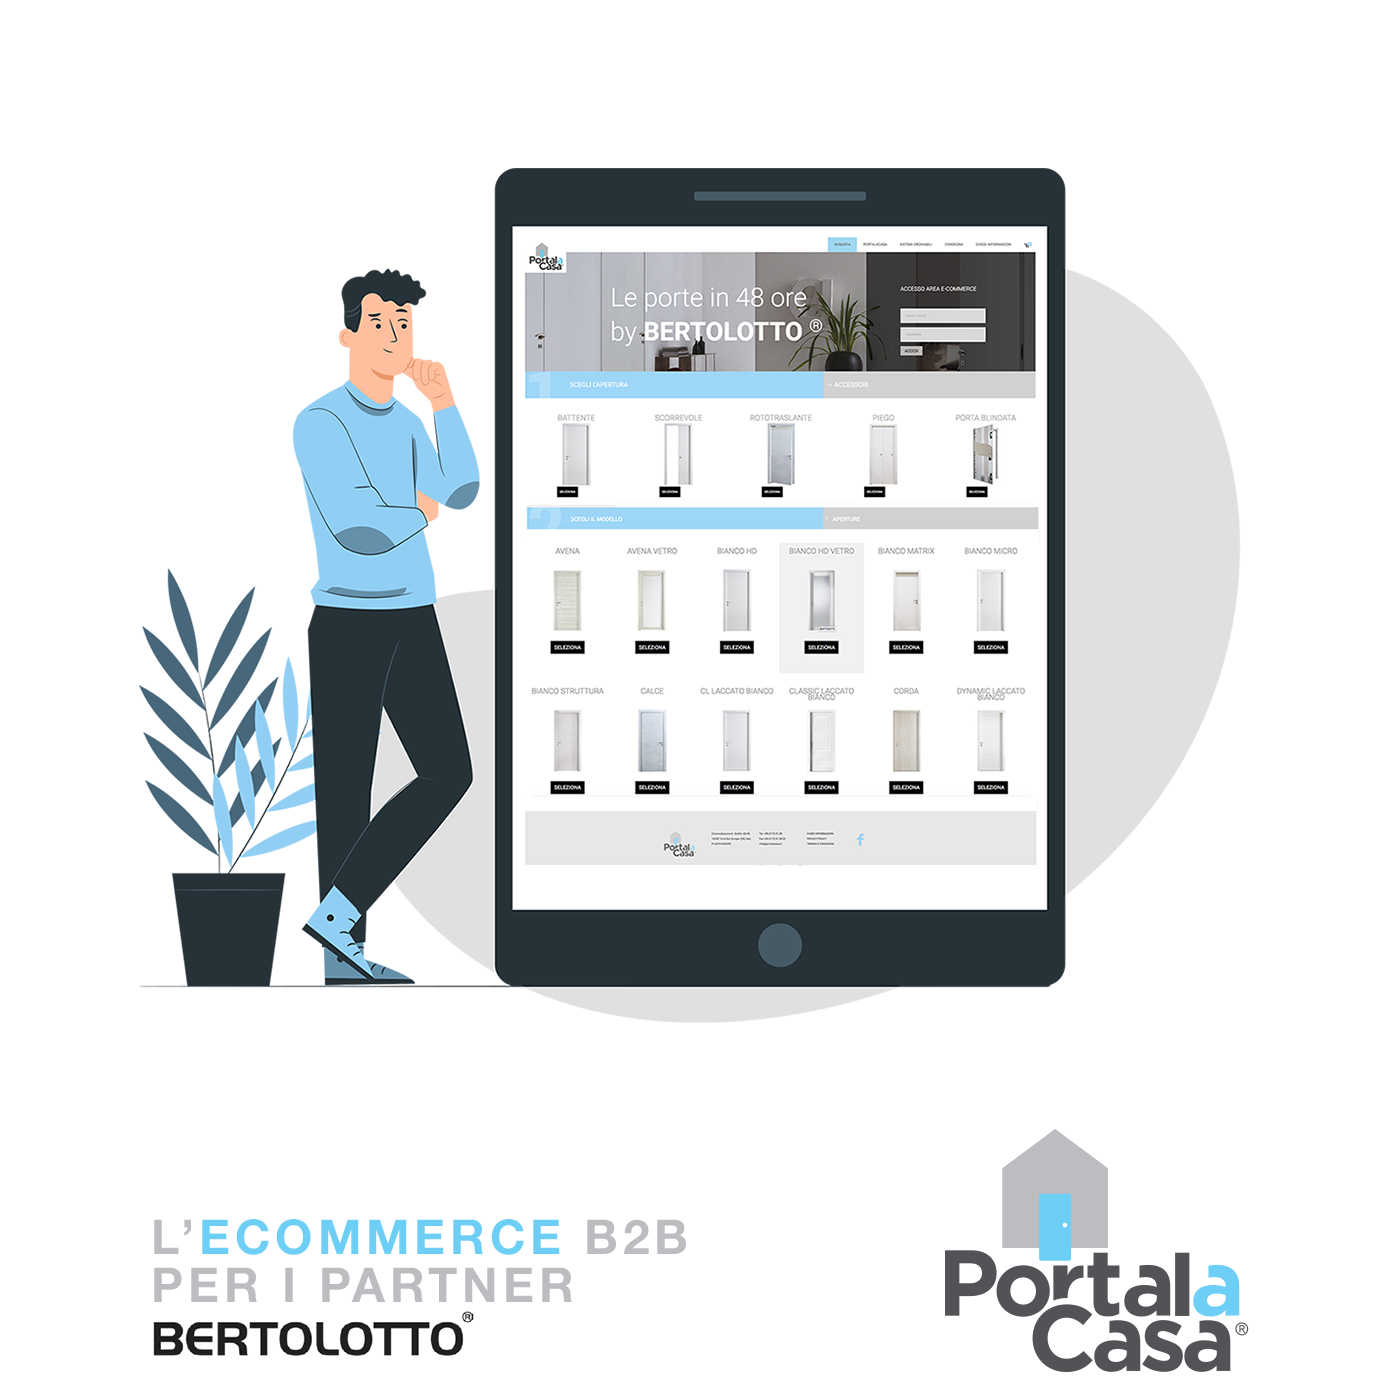 Portalacasa - L'e-commerce in 48 ore per i Partner Bertolotto®